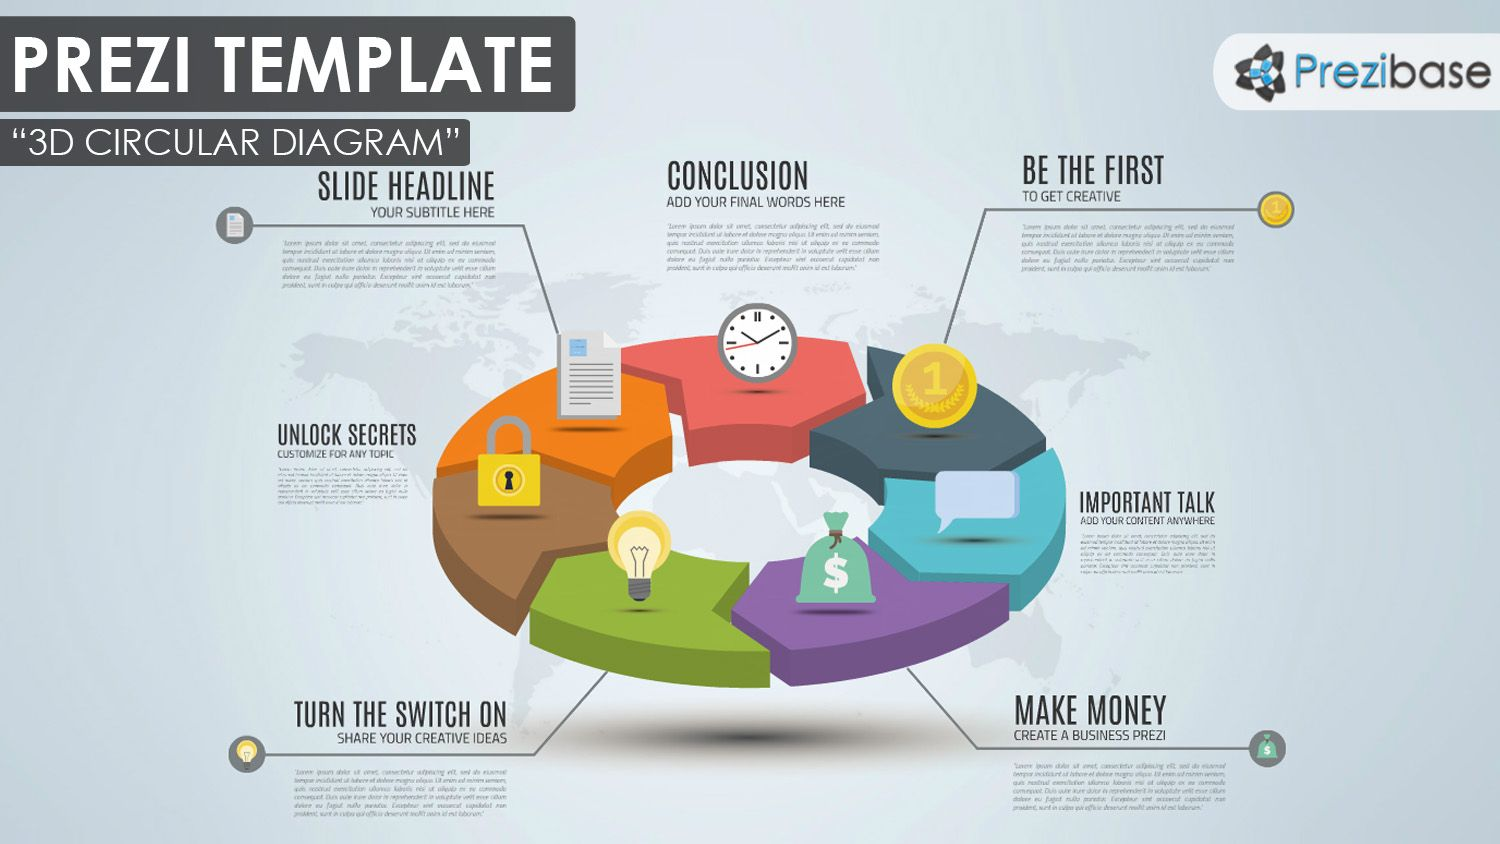 medium resolution of colorful and creative business 3d circular pie chart diagram prezi template for presentations